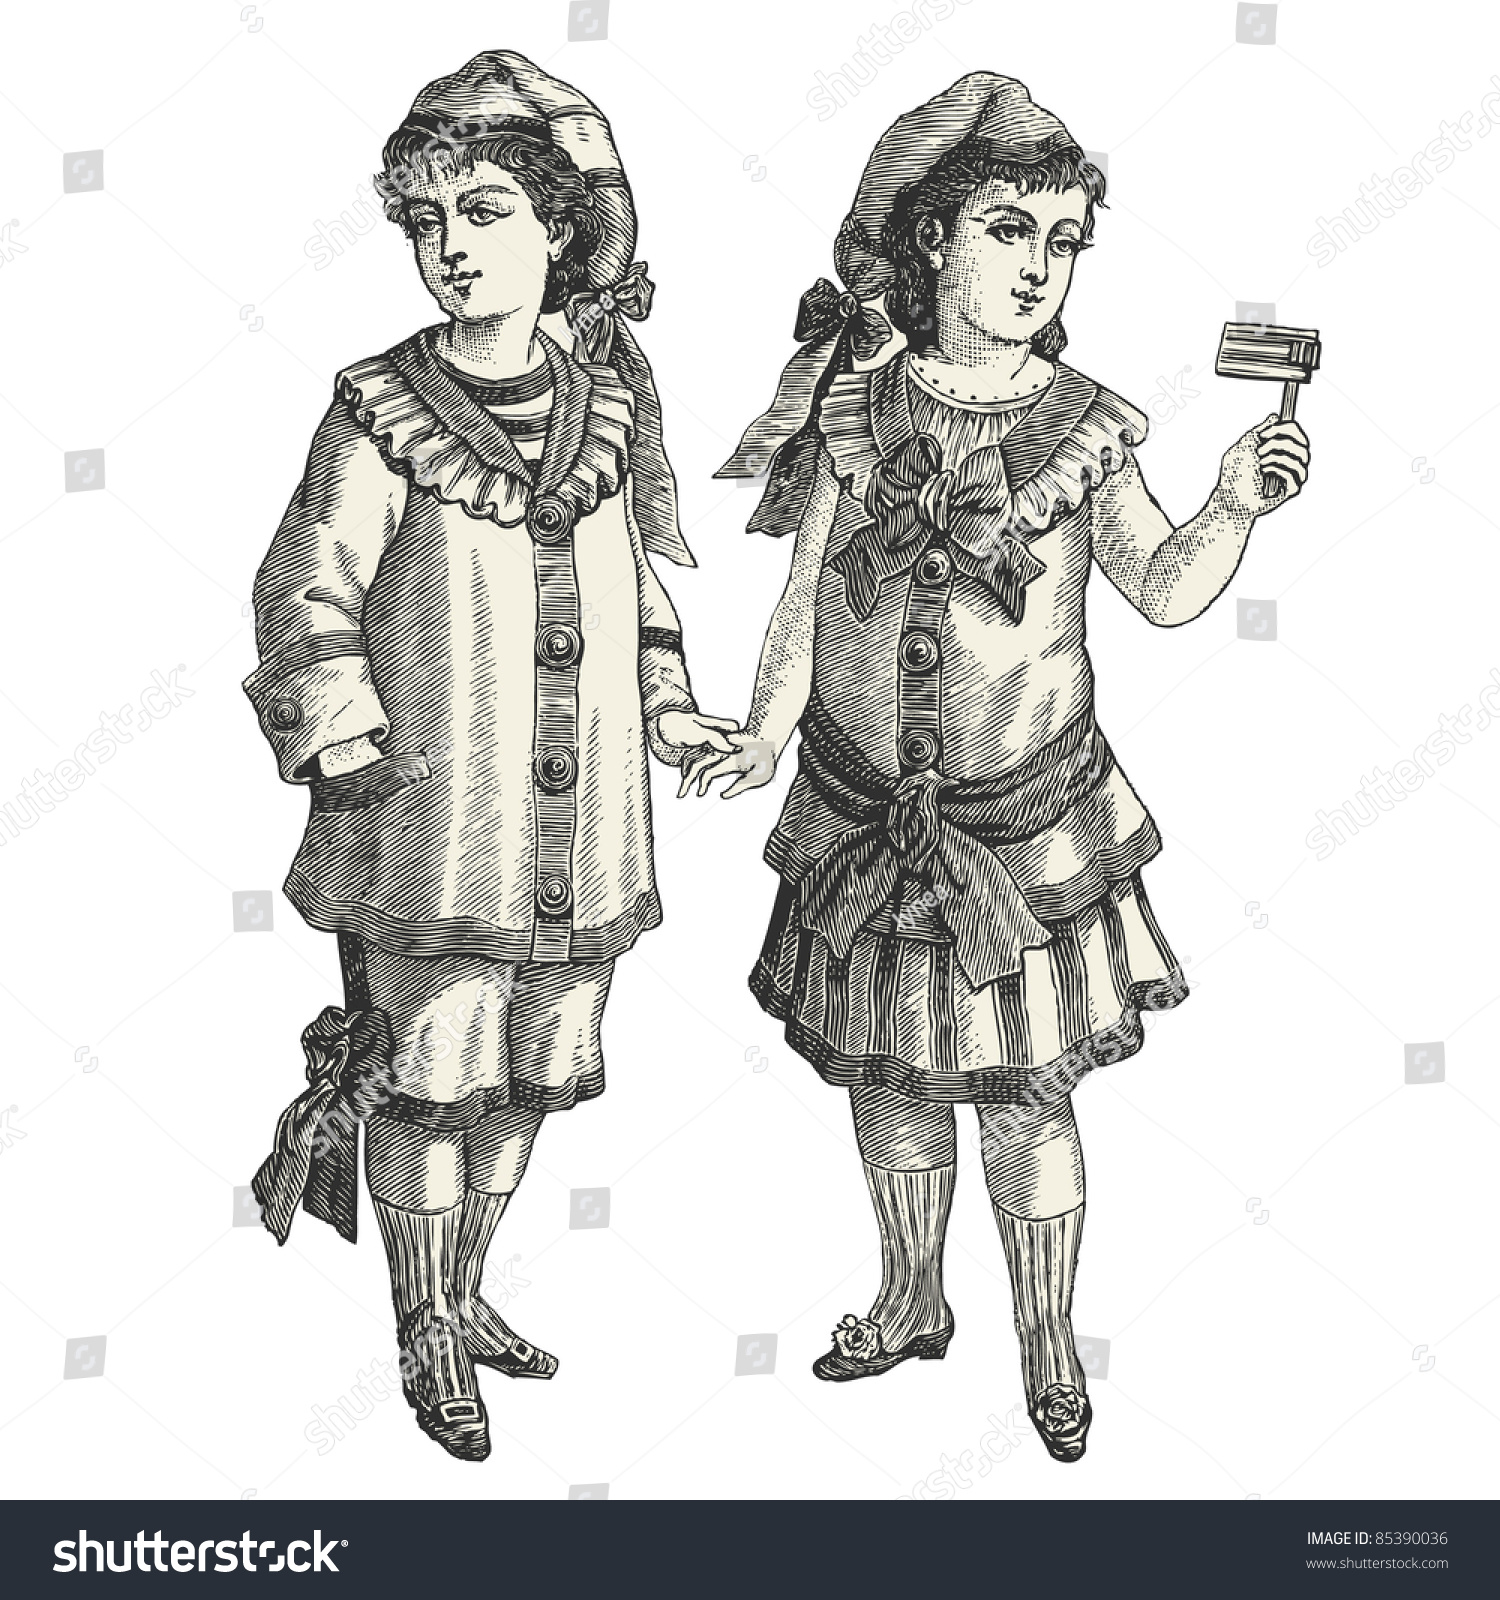 Brother & sister - vintage engraved illustration -